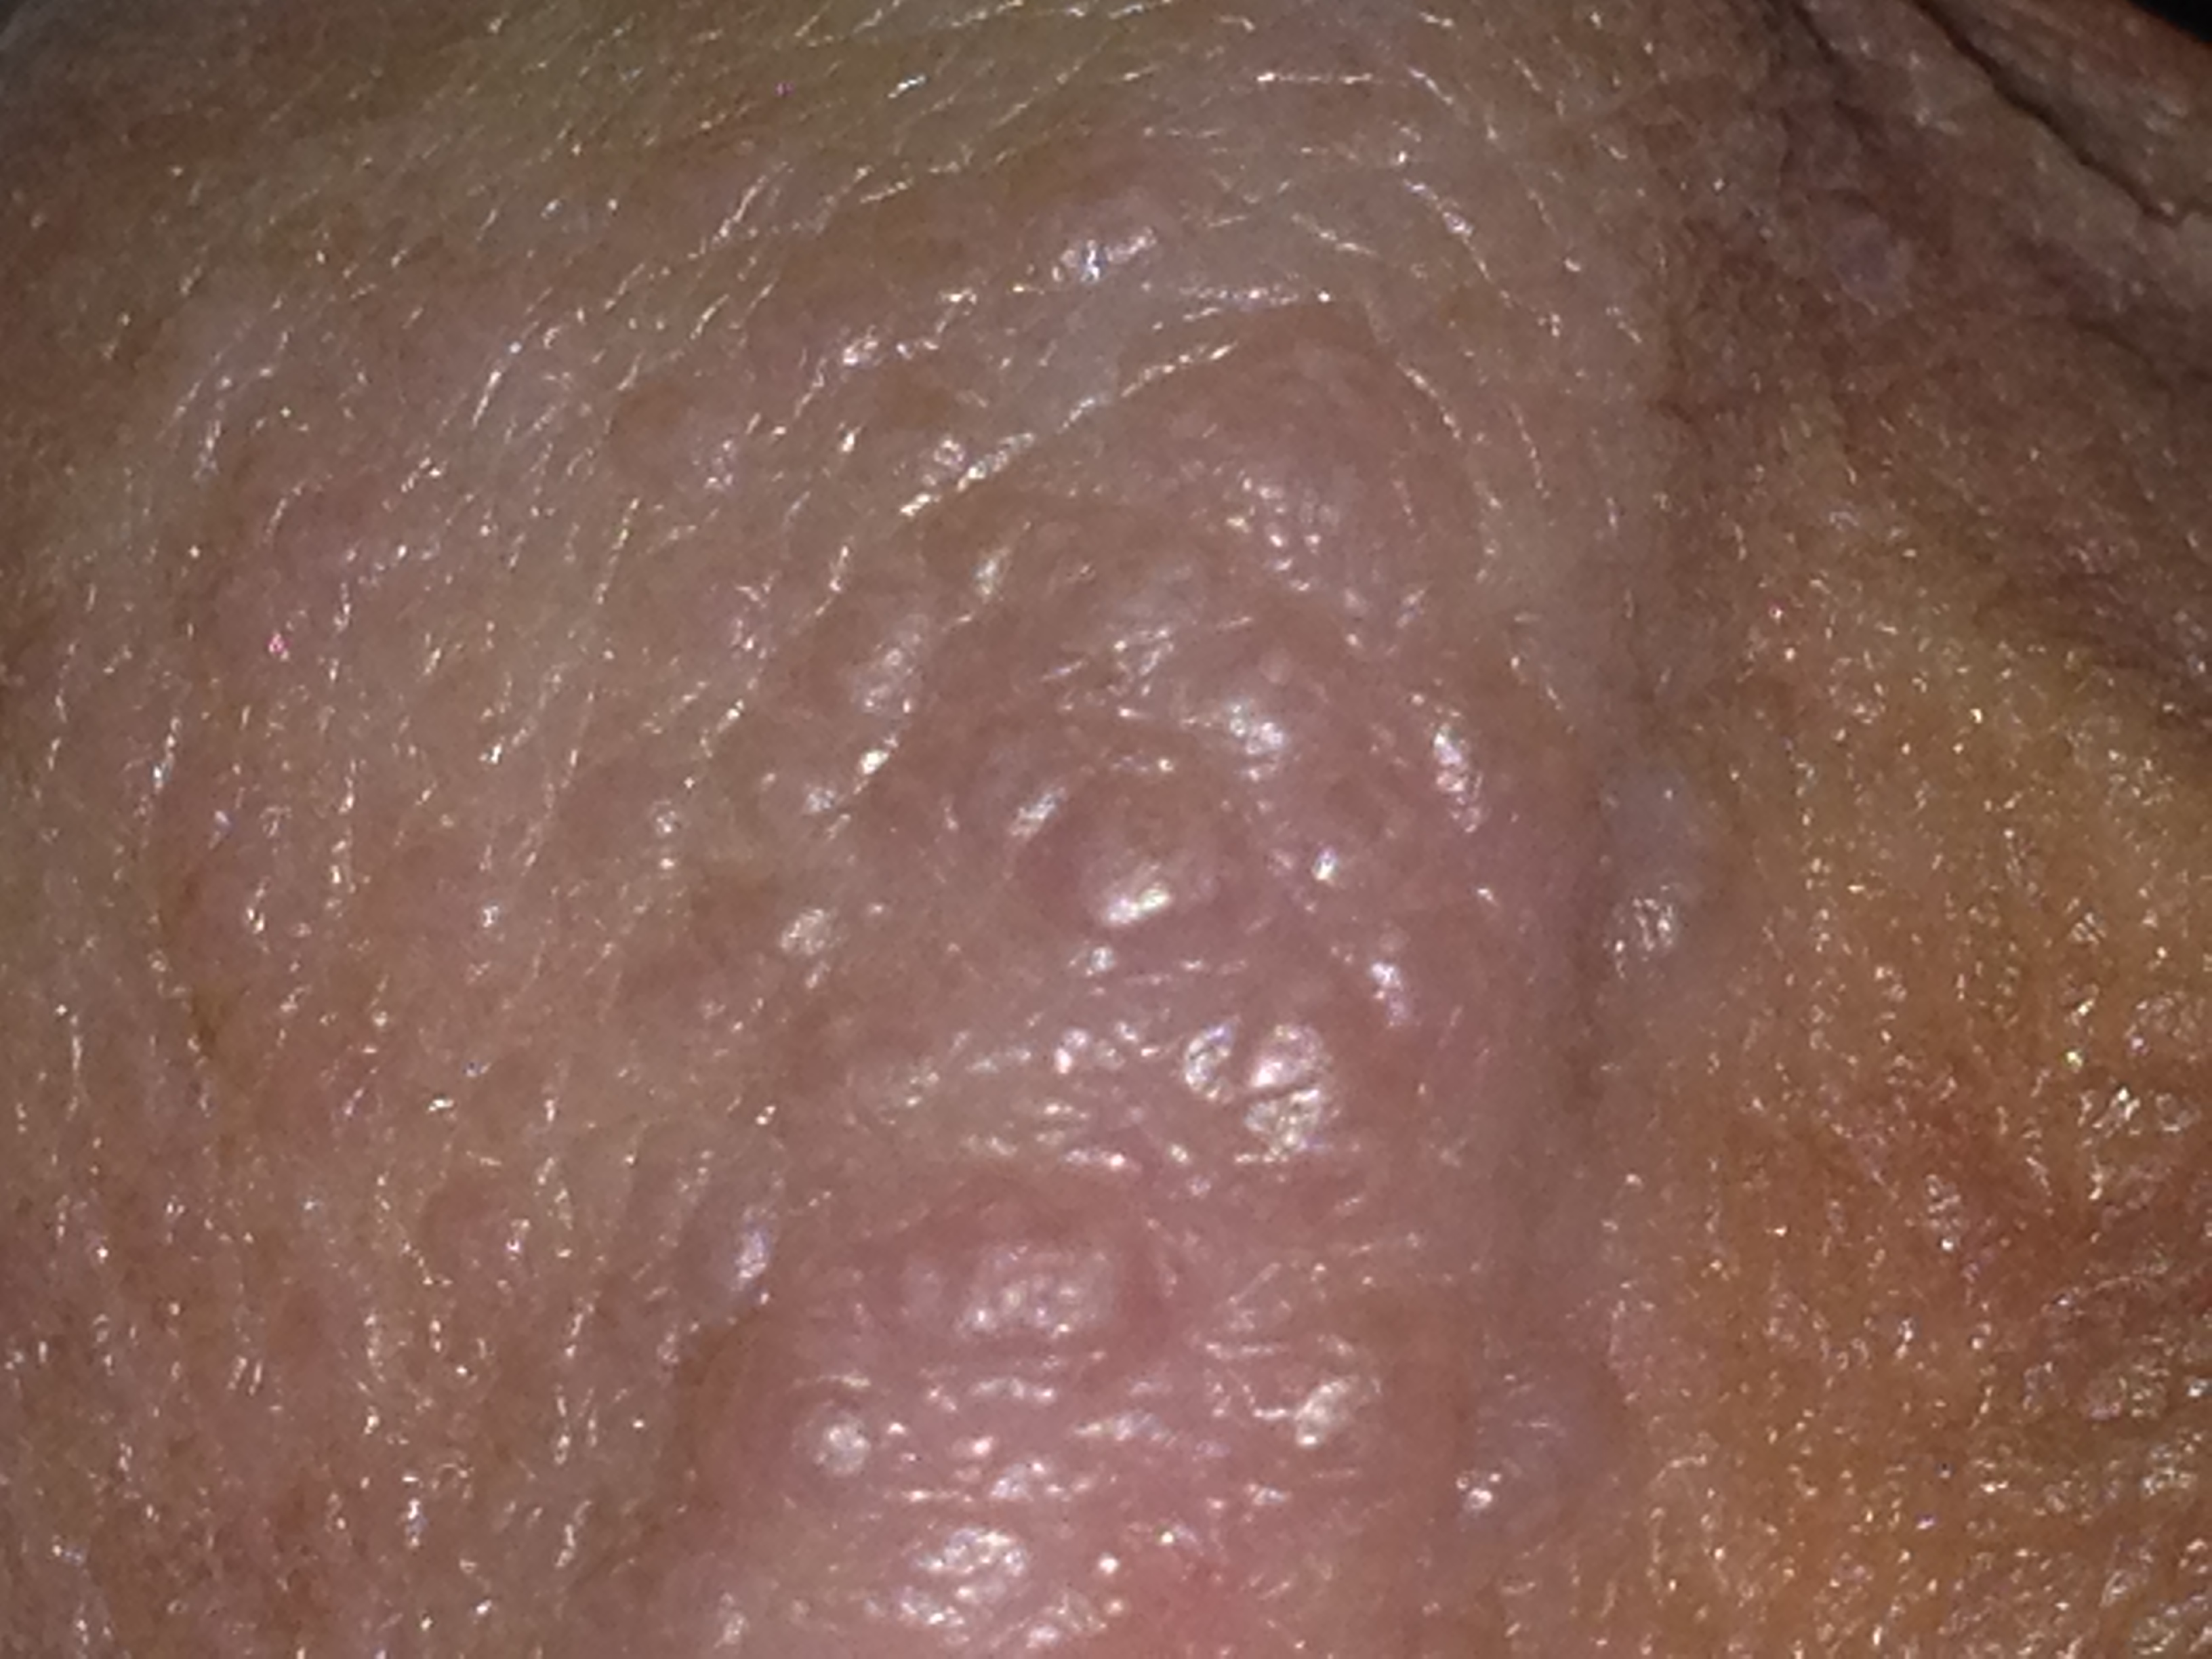 White Bumps On The Penis 3